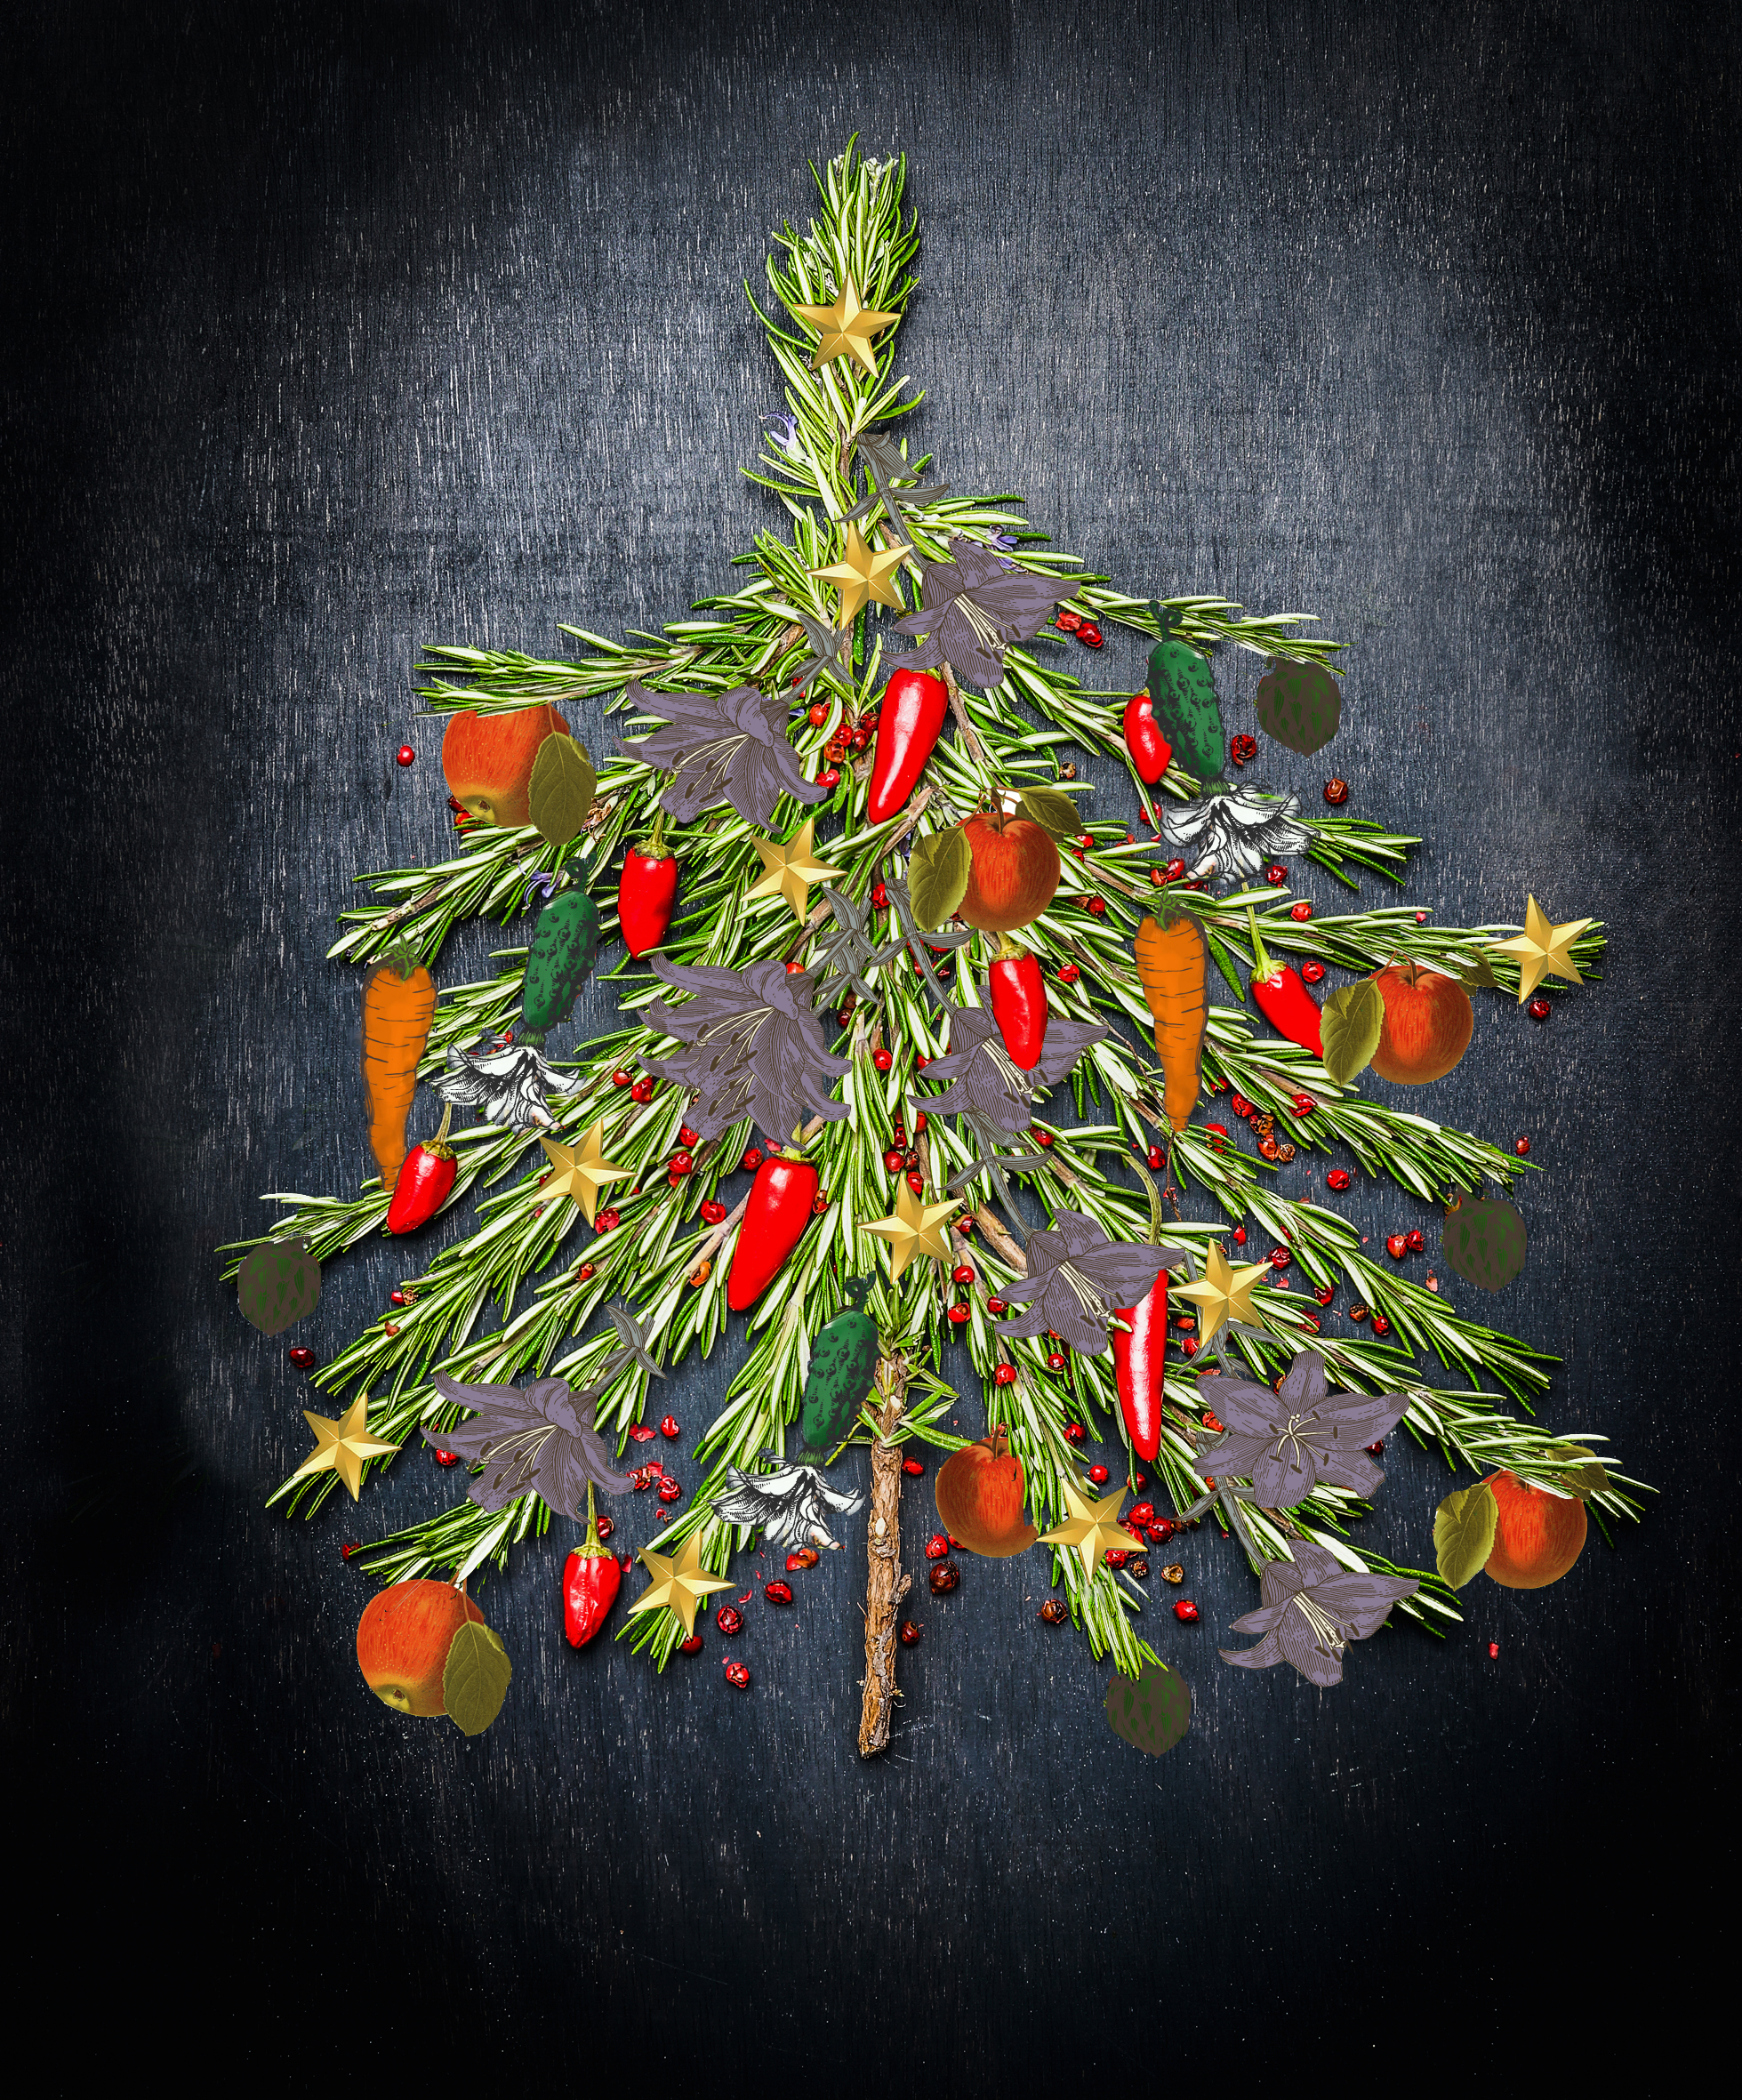 Food Christmas tree made of fresh rosemary and red chili on dark background, top view